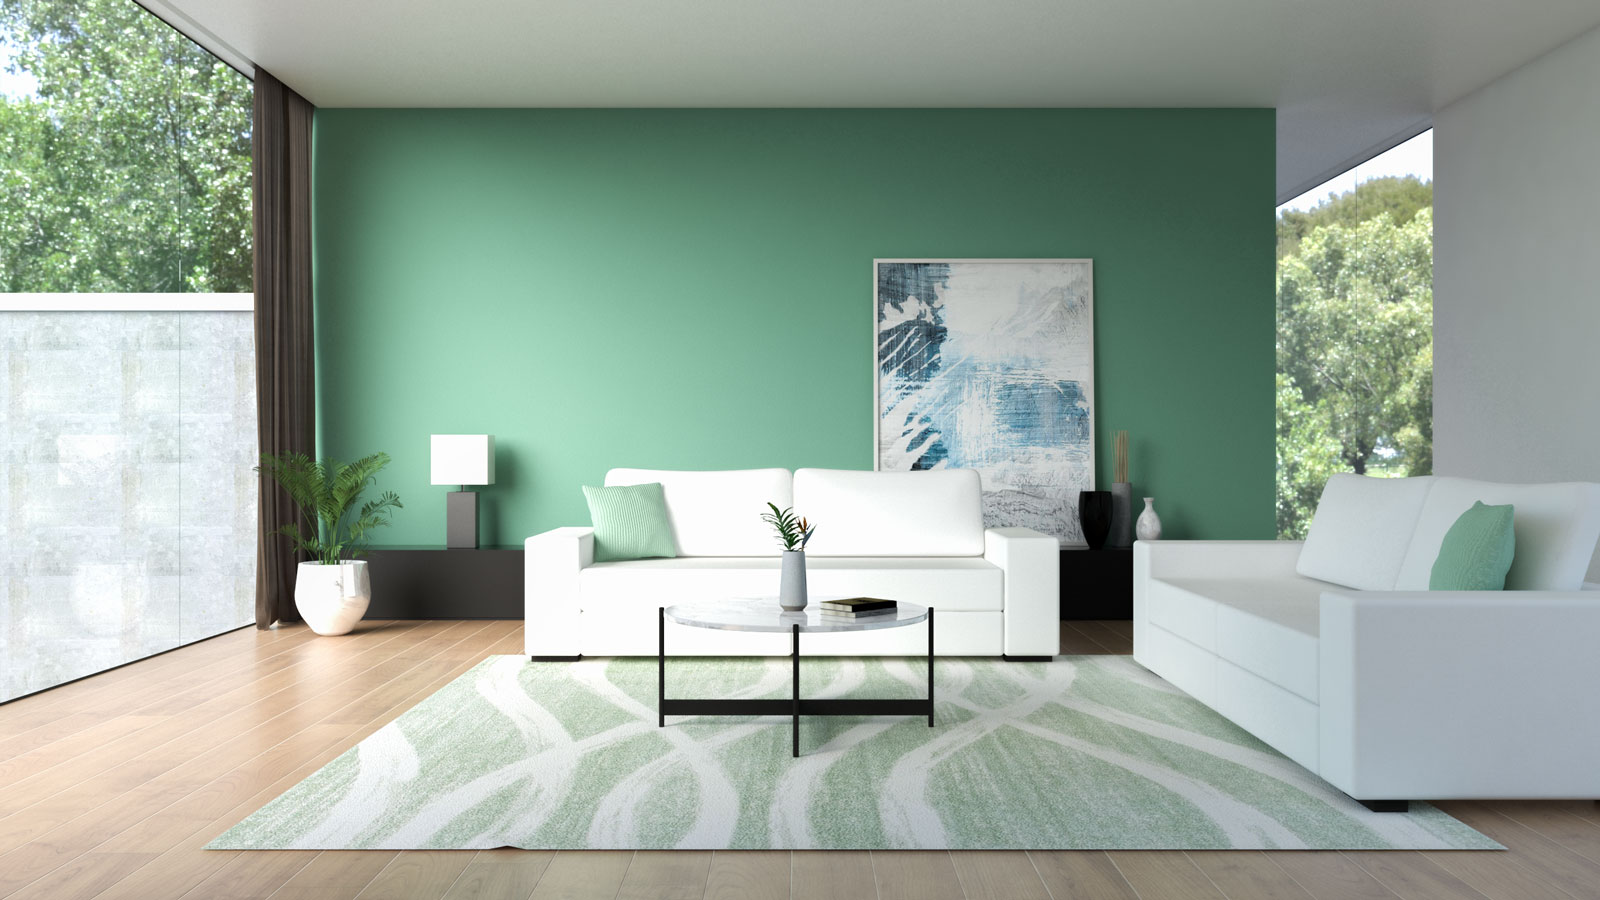 White couch with green wall